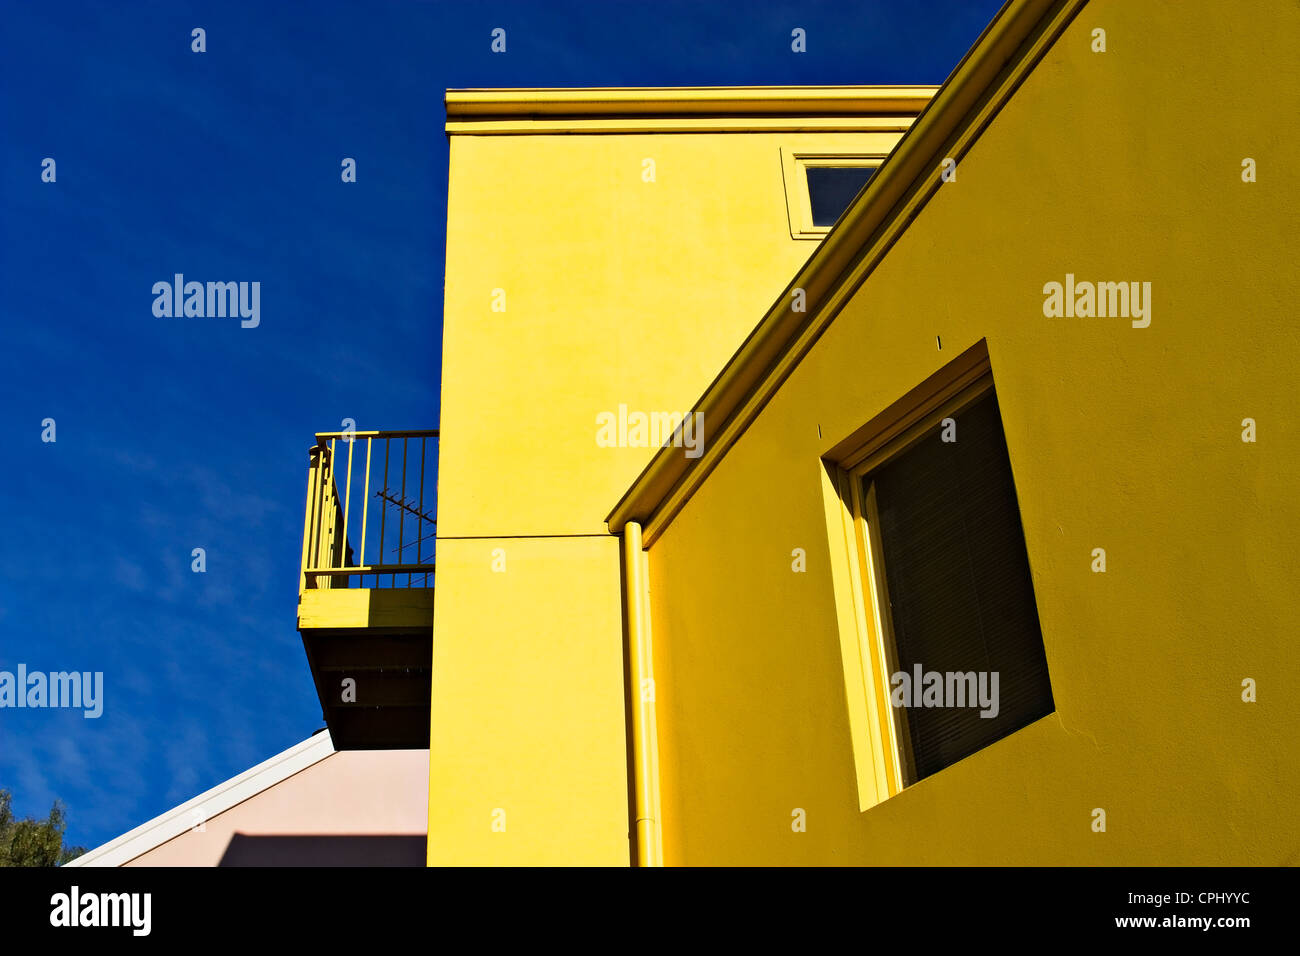 This bright yellow contemporary townhouse is located in the Melbourne suburb of Flemington. - Stock Image